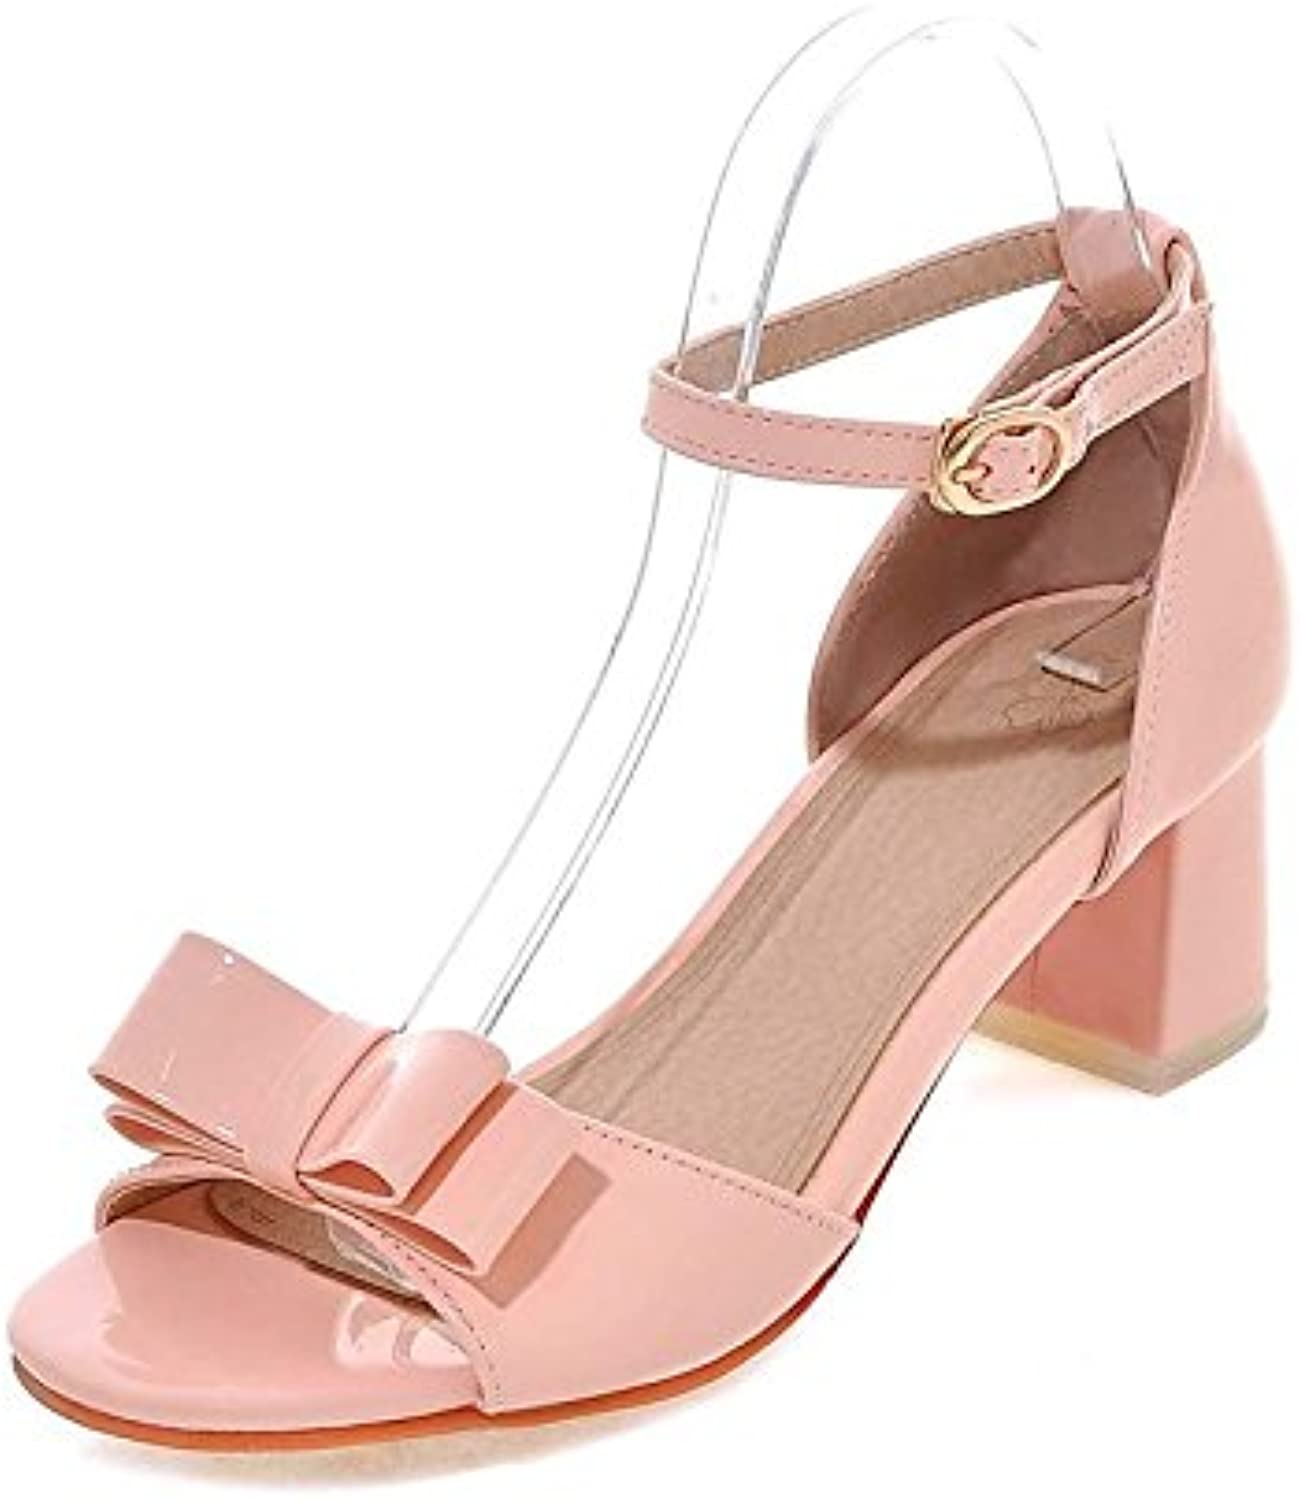 Women's shoes Leatherette Leather Spring,Summer Basic Pump Sandals Chunky Heel Open Toe Bowknot Buckle for Office,Career